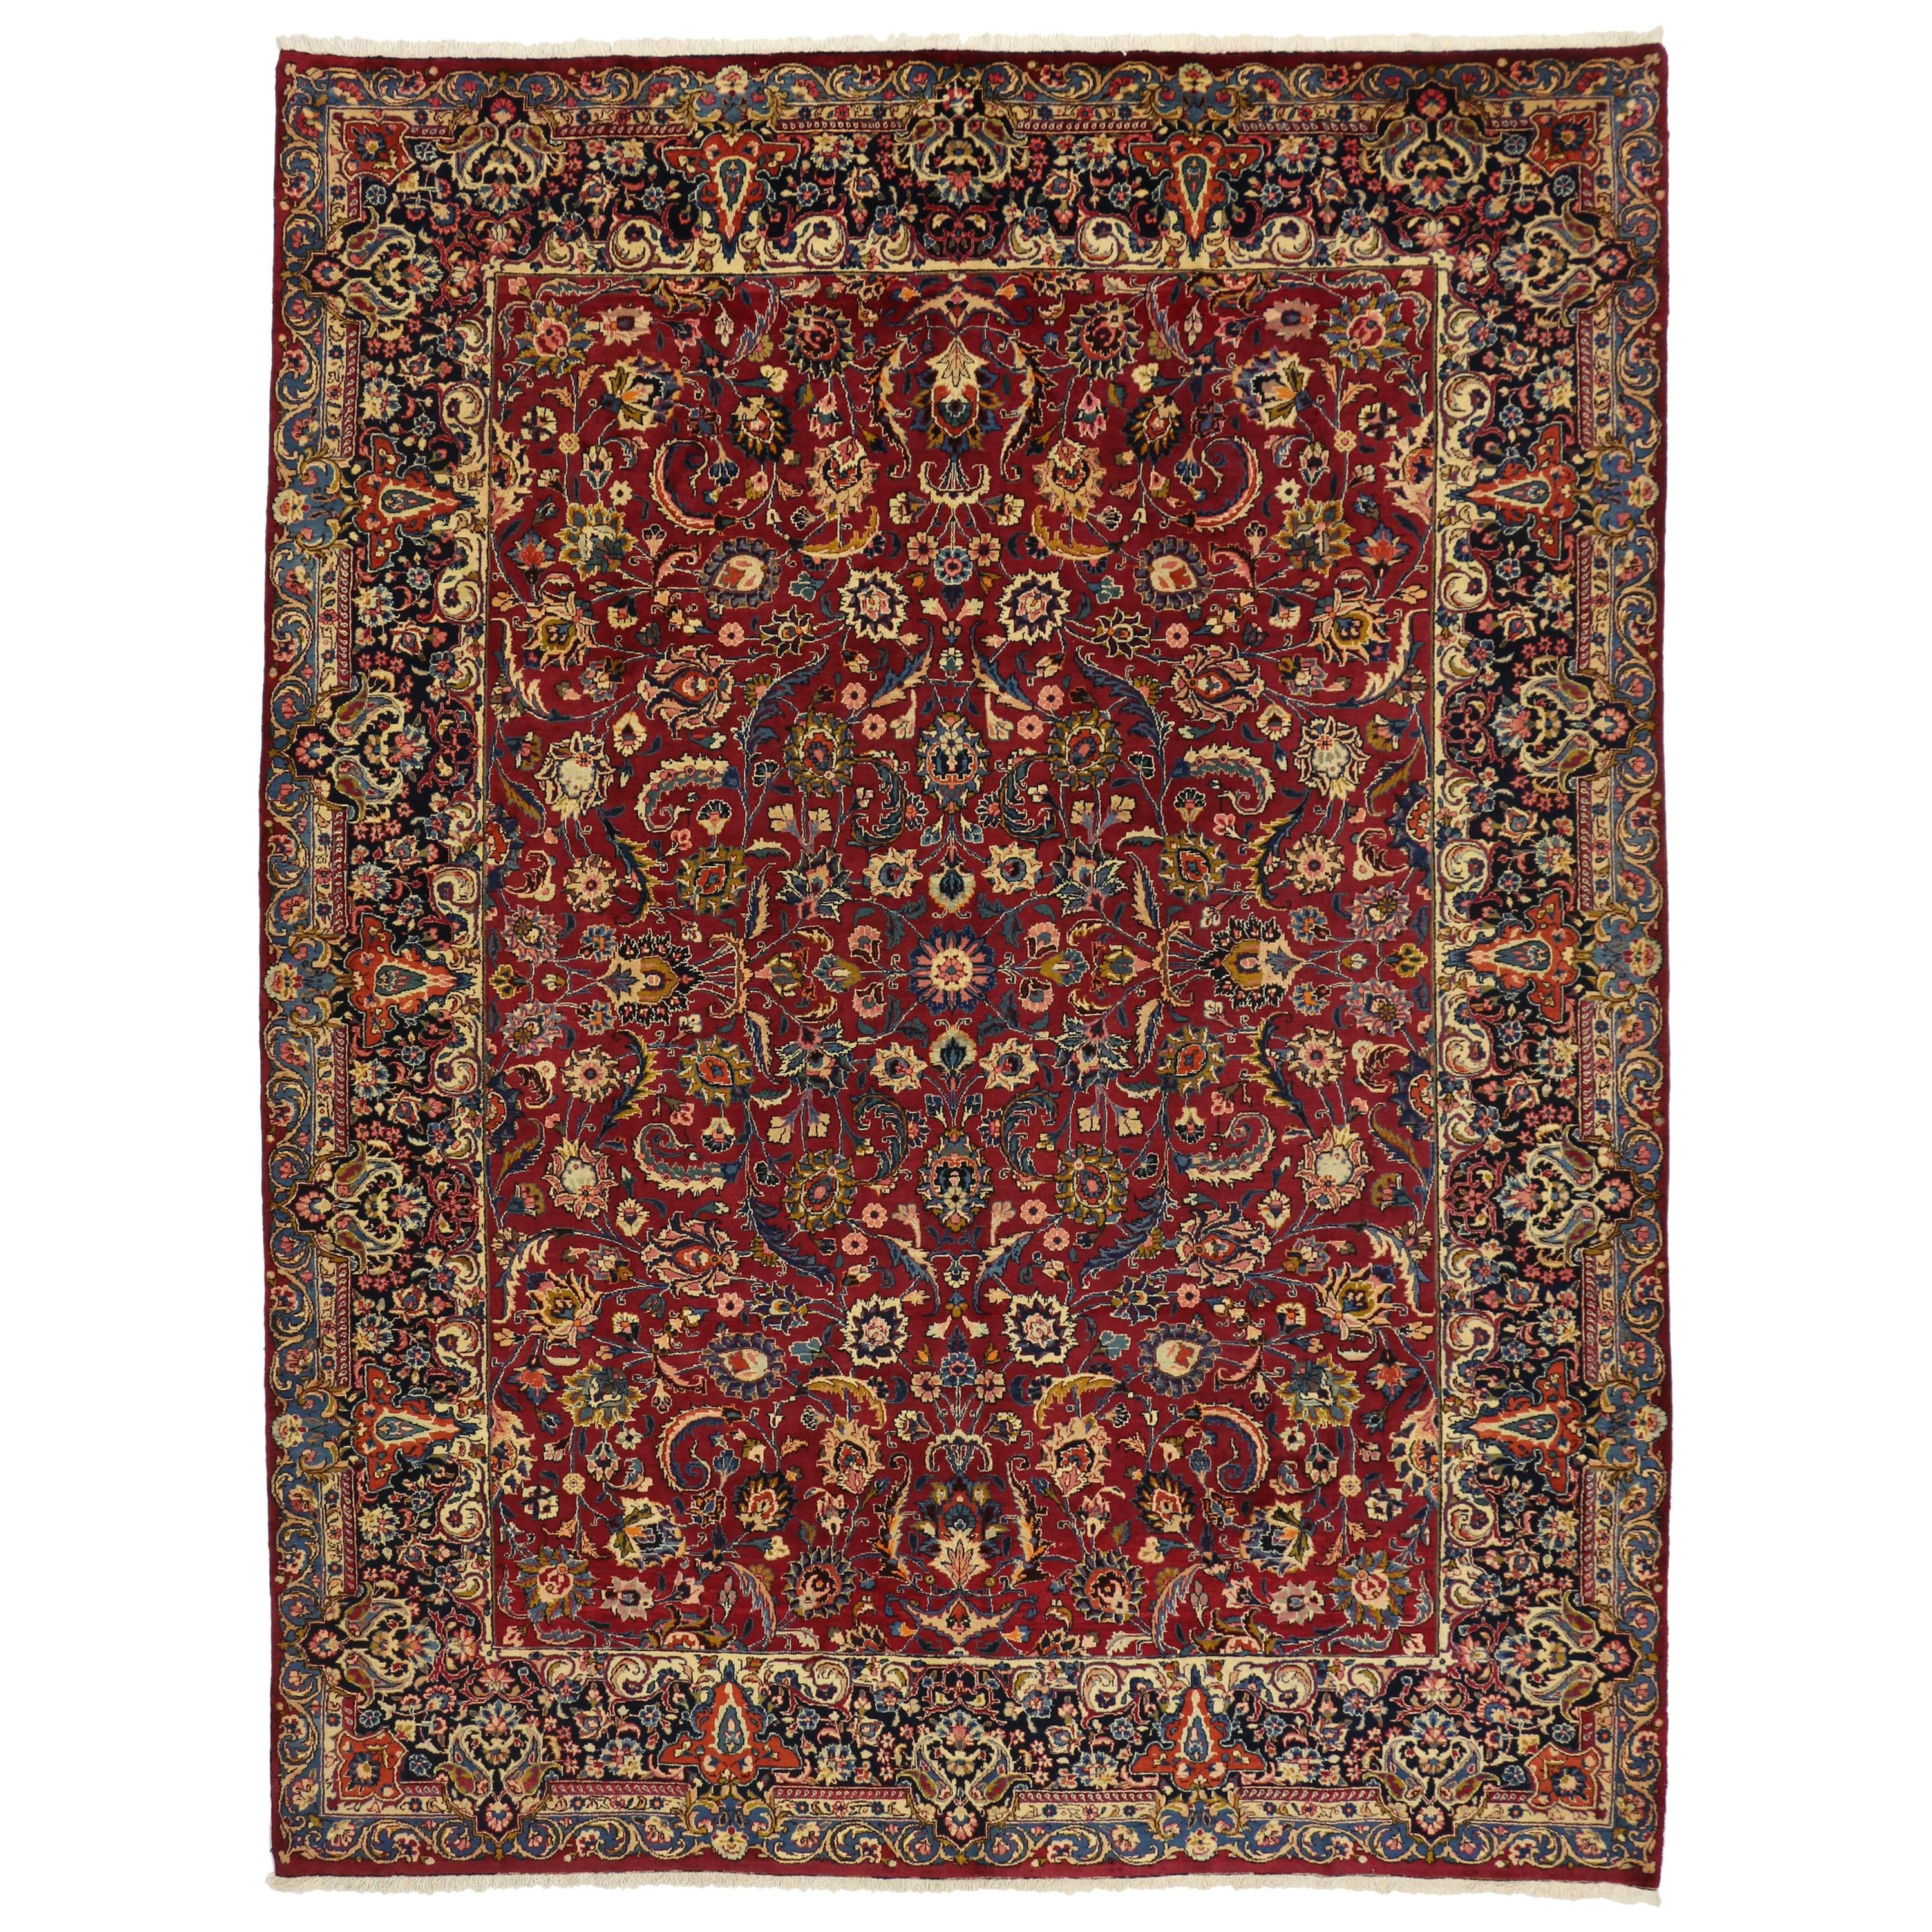 Vintage Persian Mashad Area Rug with Traditional Colonial and Federal Style